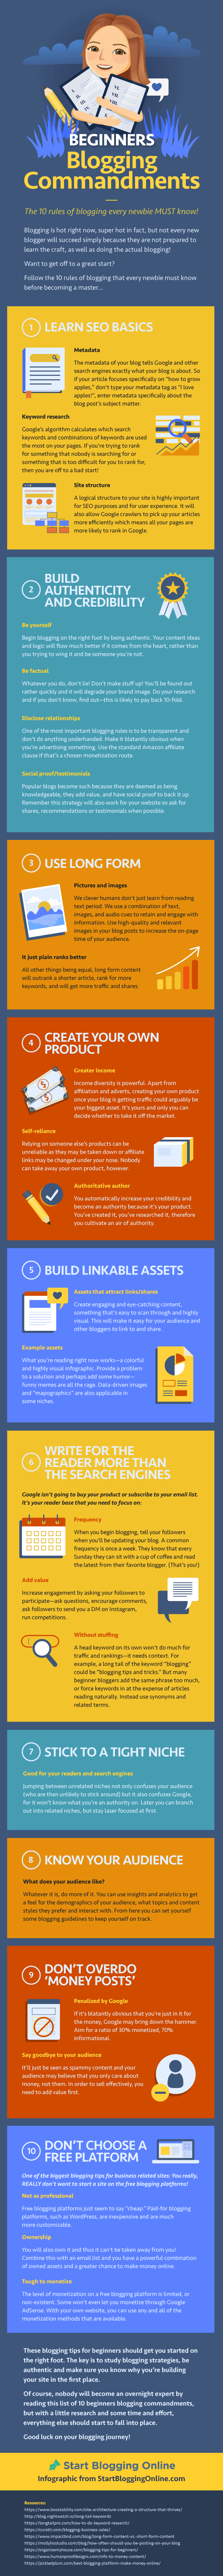 Excited to get started with your blog? Read up on the 10 commandments every new blogger should know, in this amazing infographic!